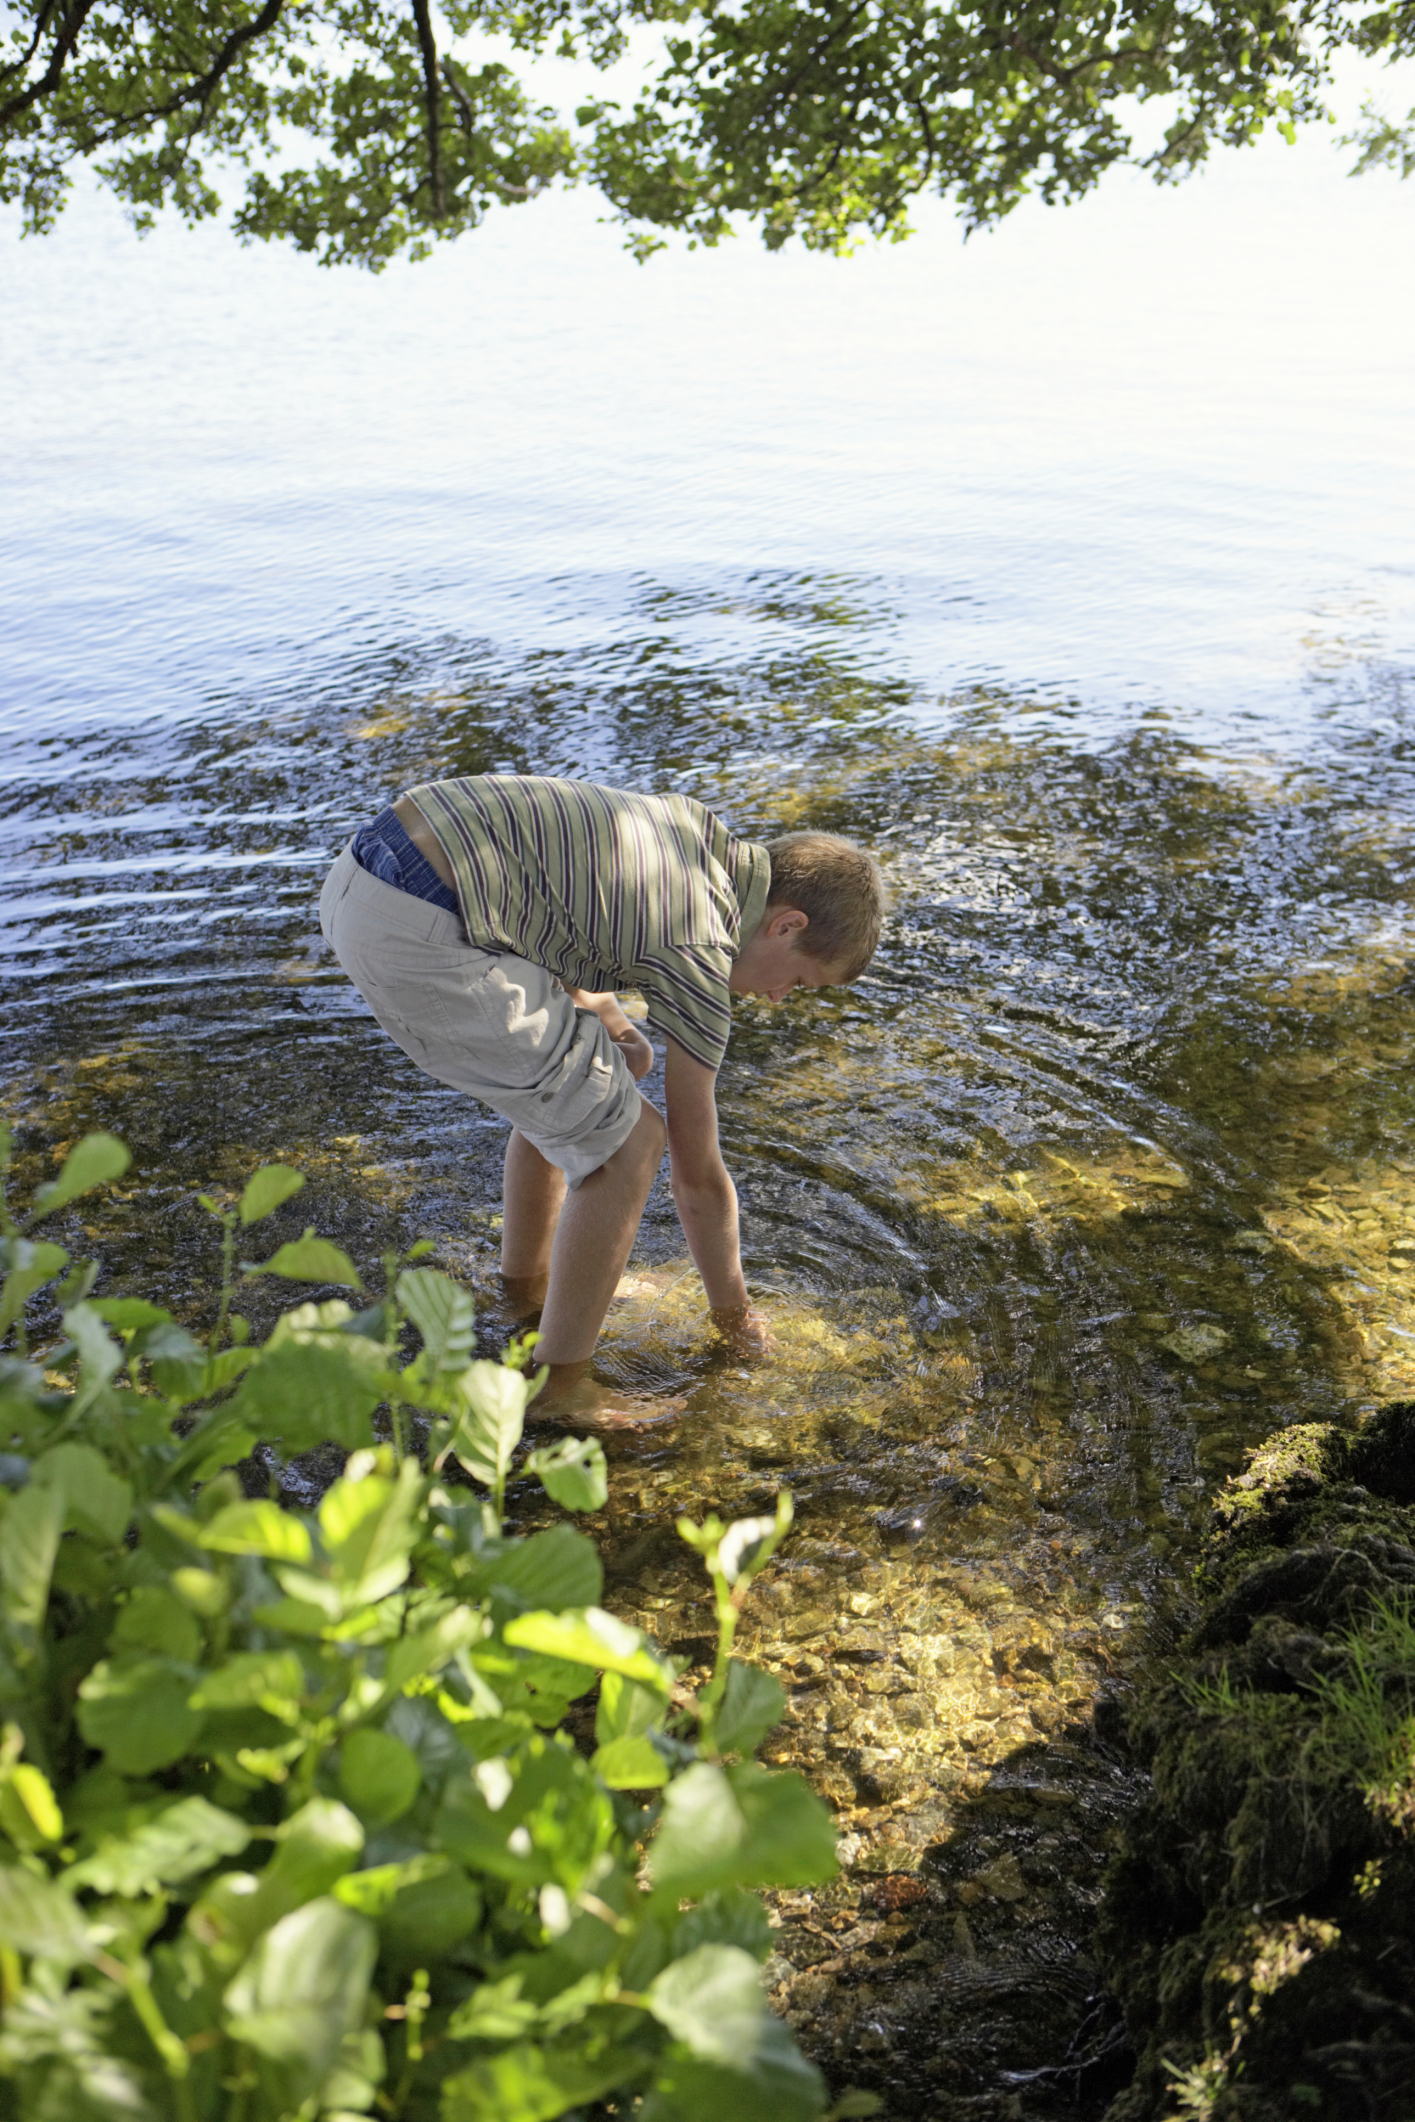 Does Dissolved Oxygen Concentration Affect Activity Level Of Freshwater Invertebrates